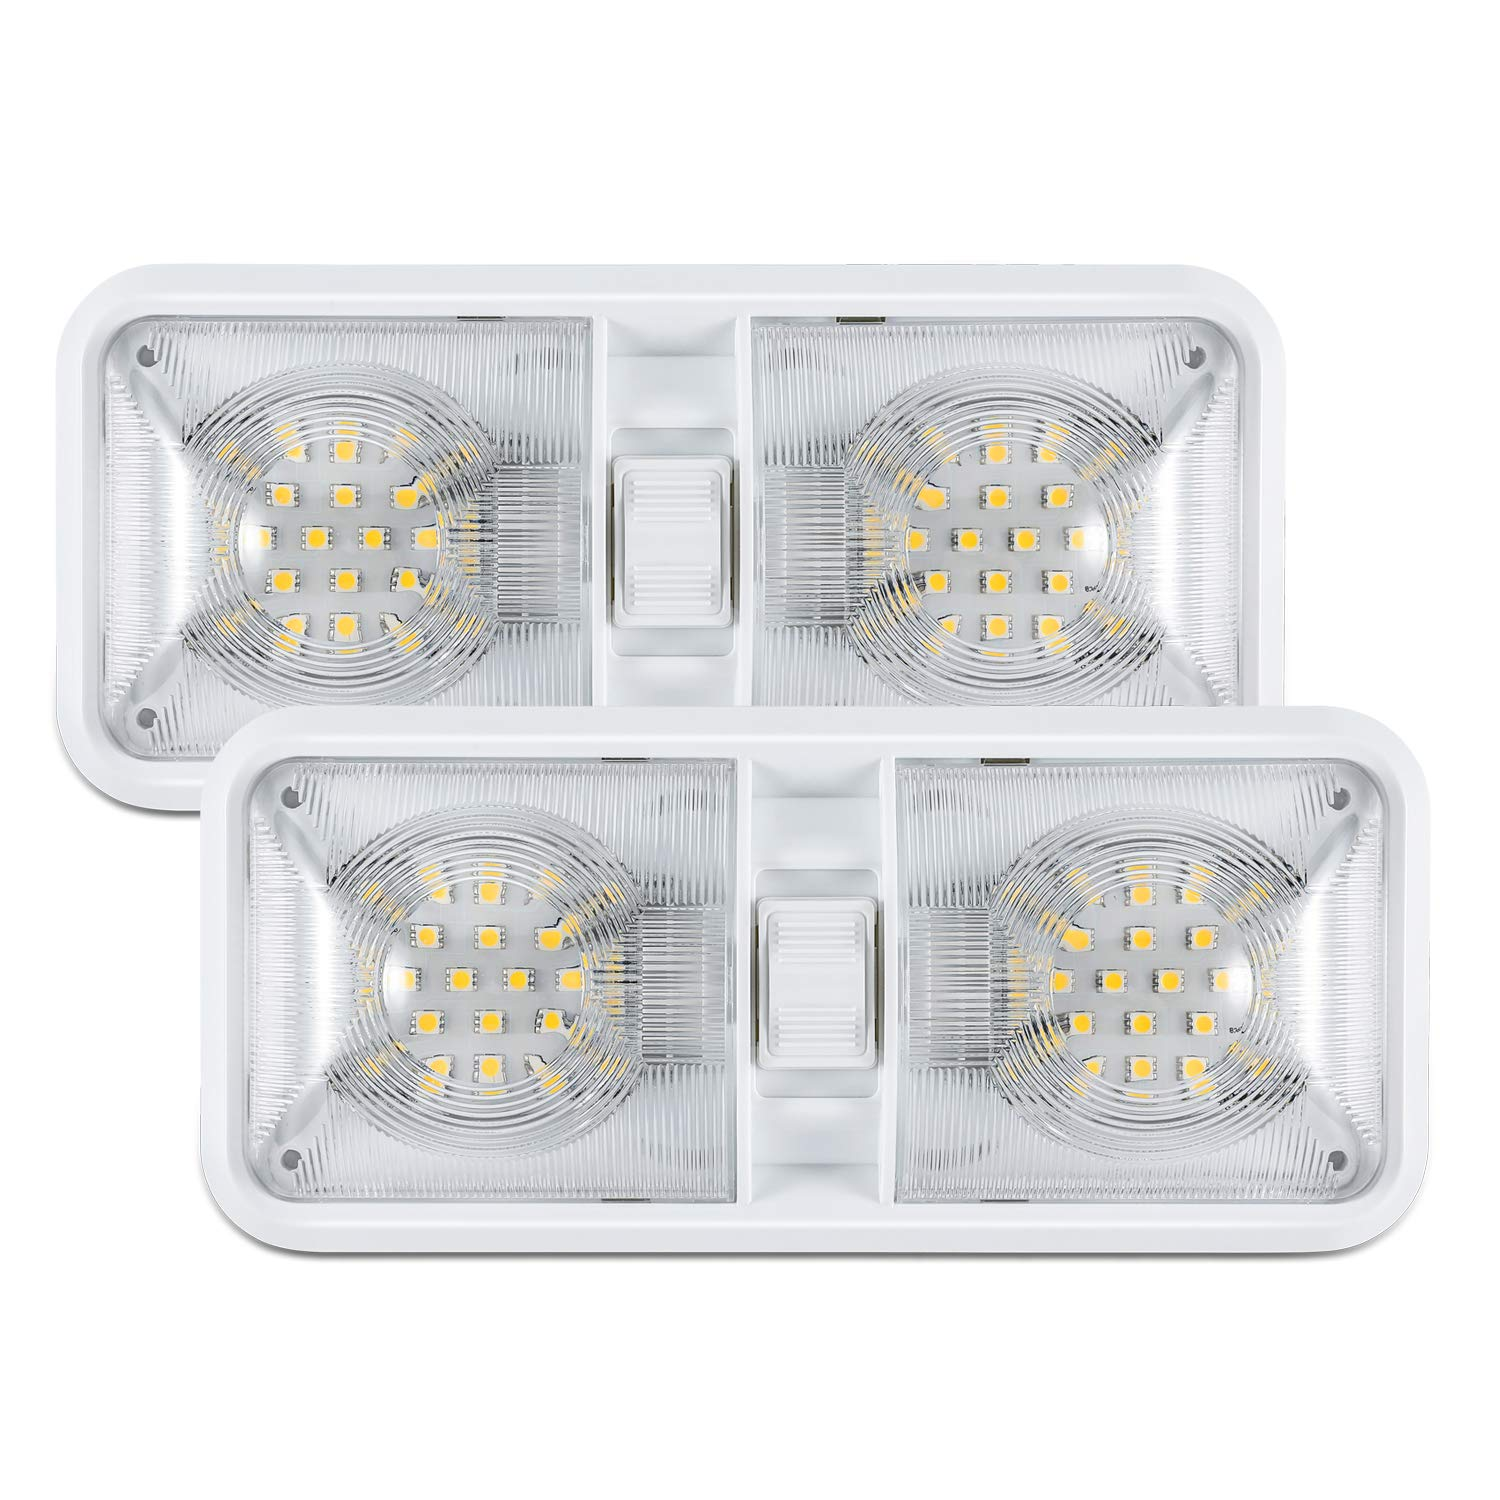 Kohree 12V Led RV Ceiling Dome Light RV Interior Lighting for Trailer Camper with Switch, White Pack of 5 HP321-HM